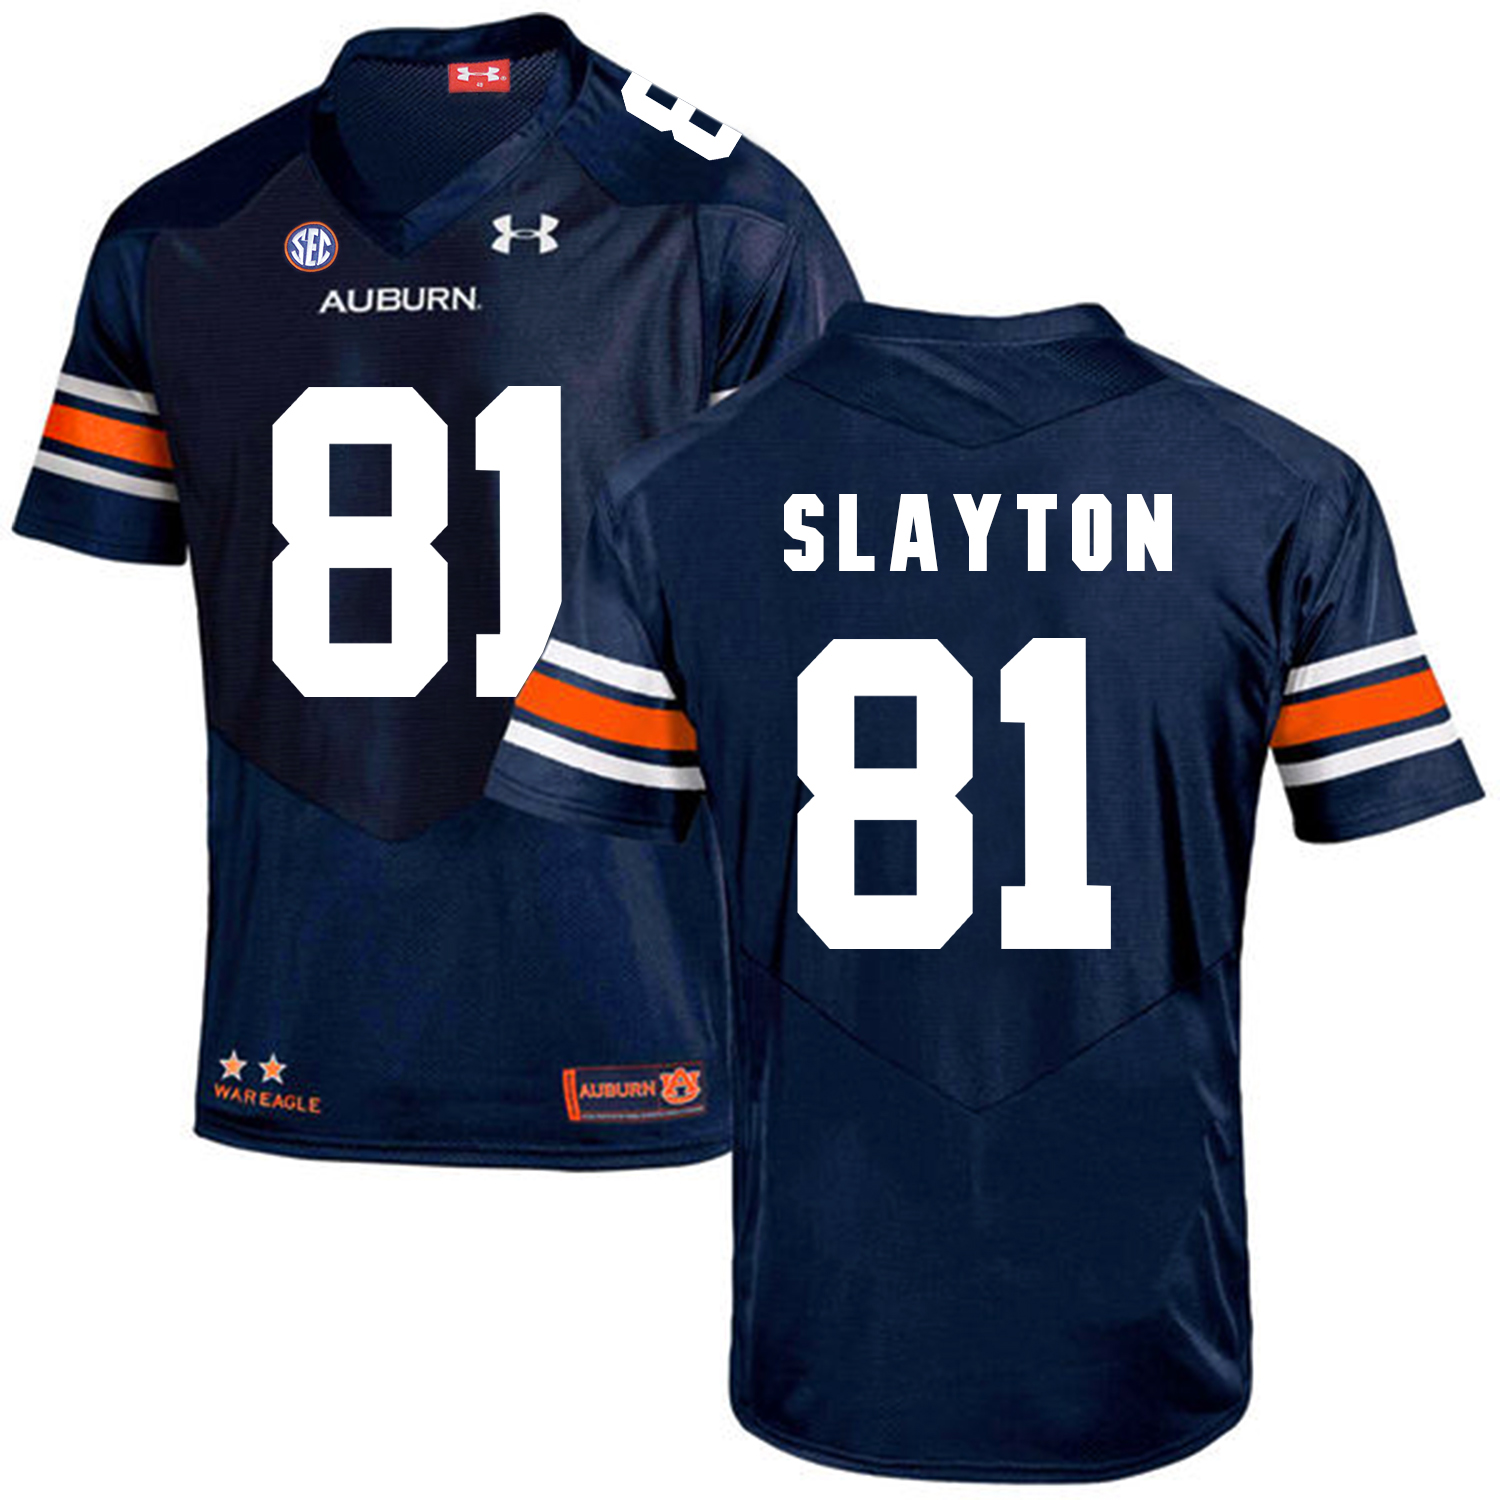 Auburn Tigers 81 Darius Slayton Navy College Football Jersey